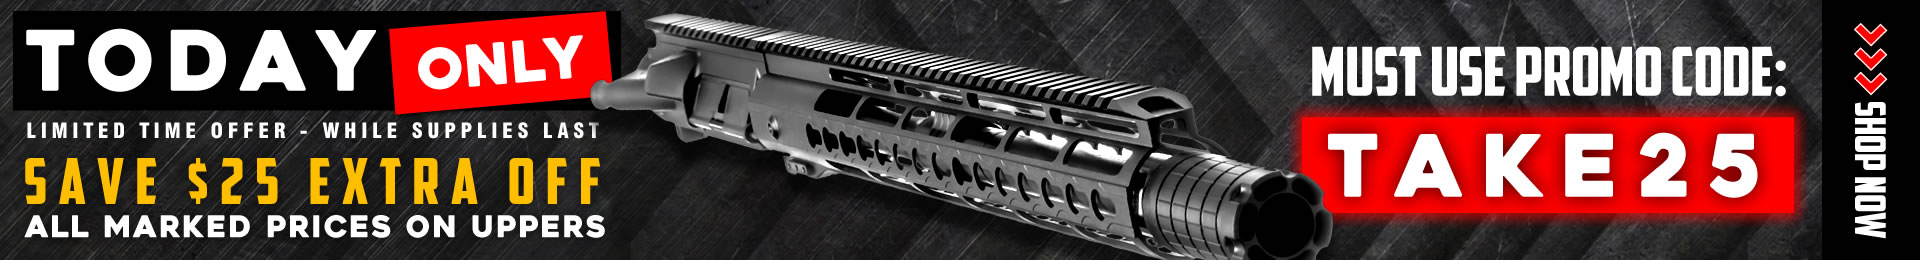 AR-15 Upper Assembly & AR Pistol Deals